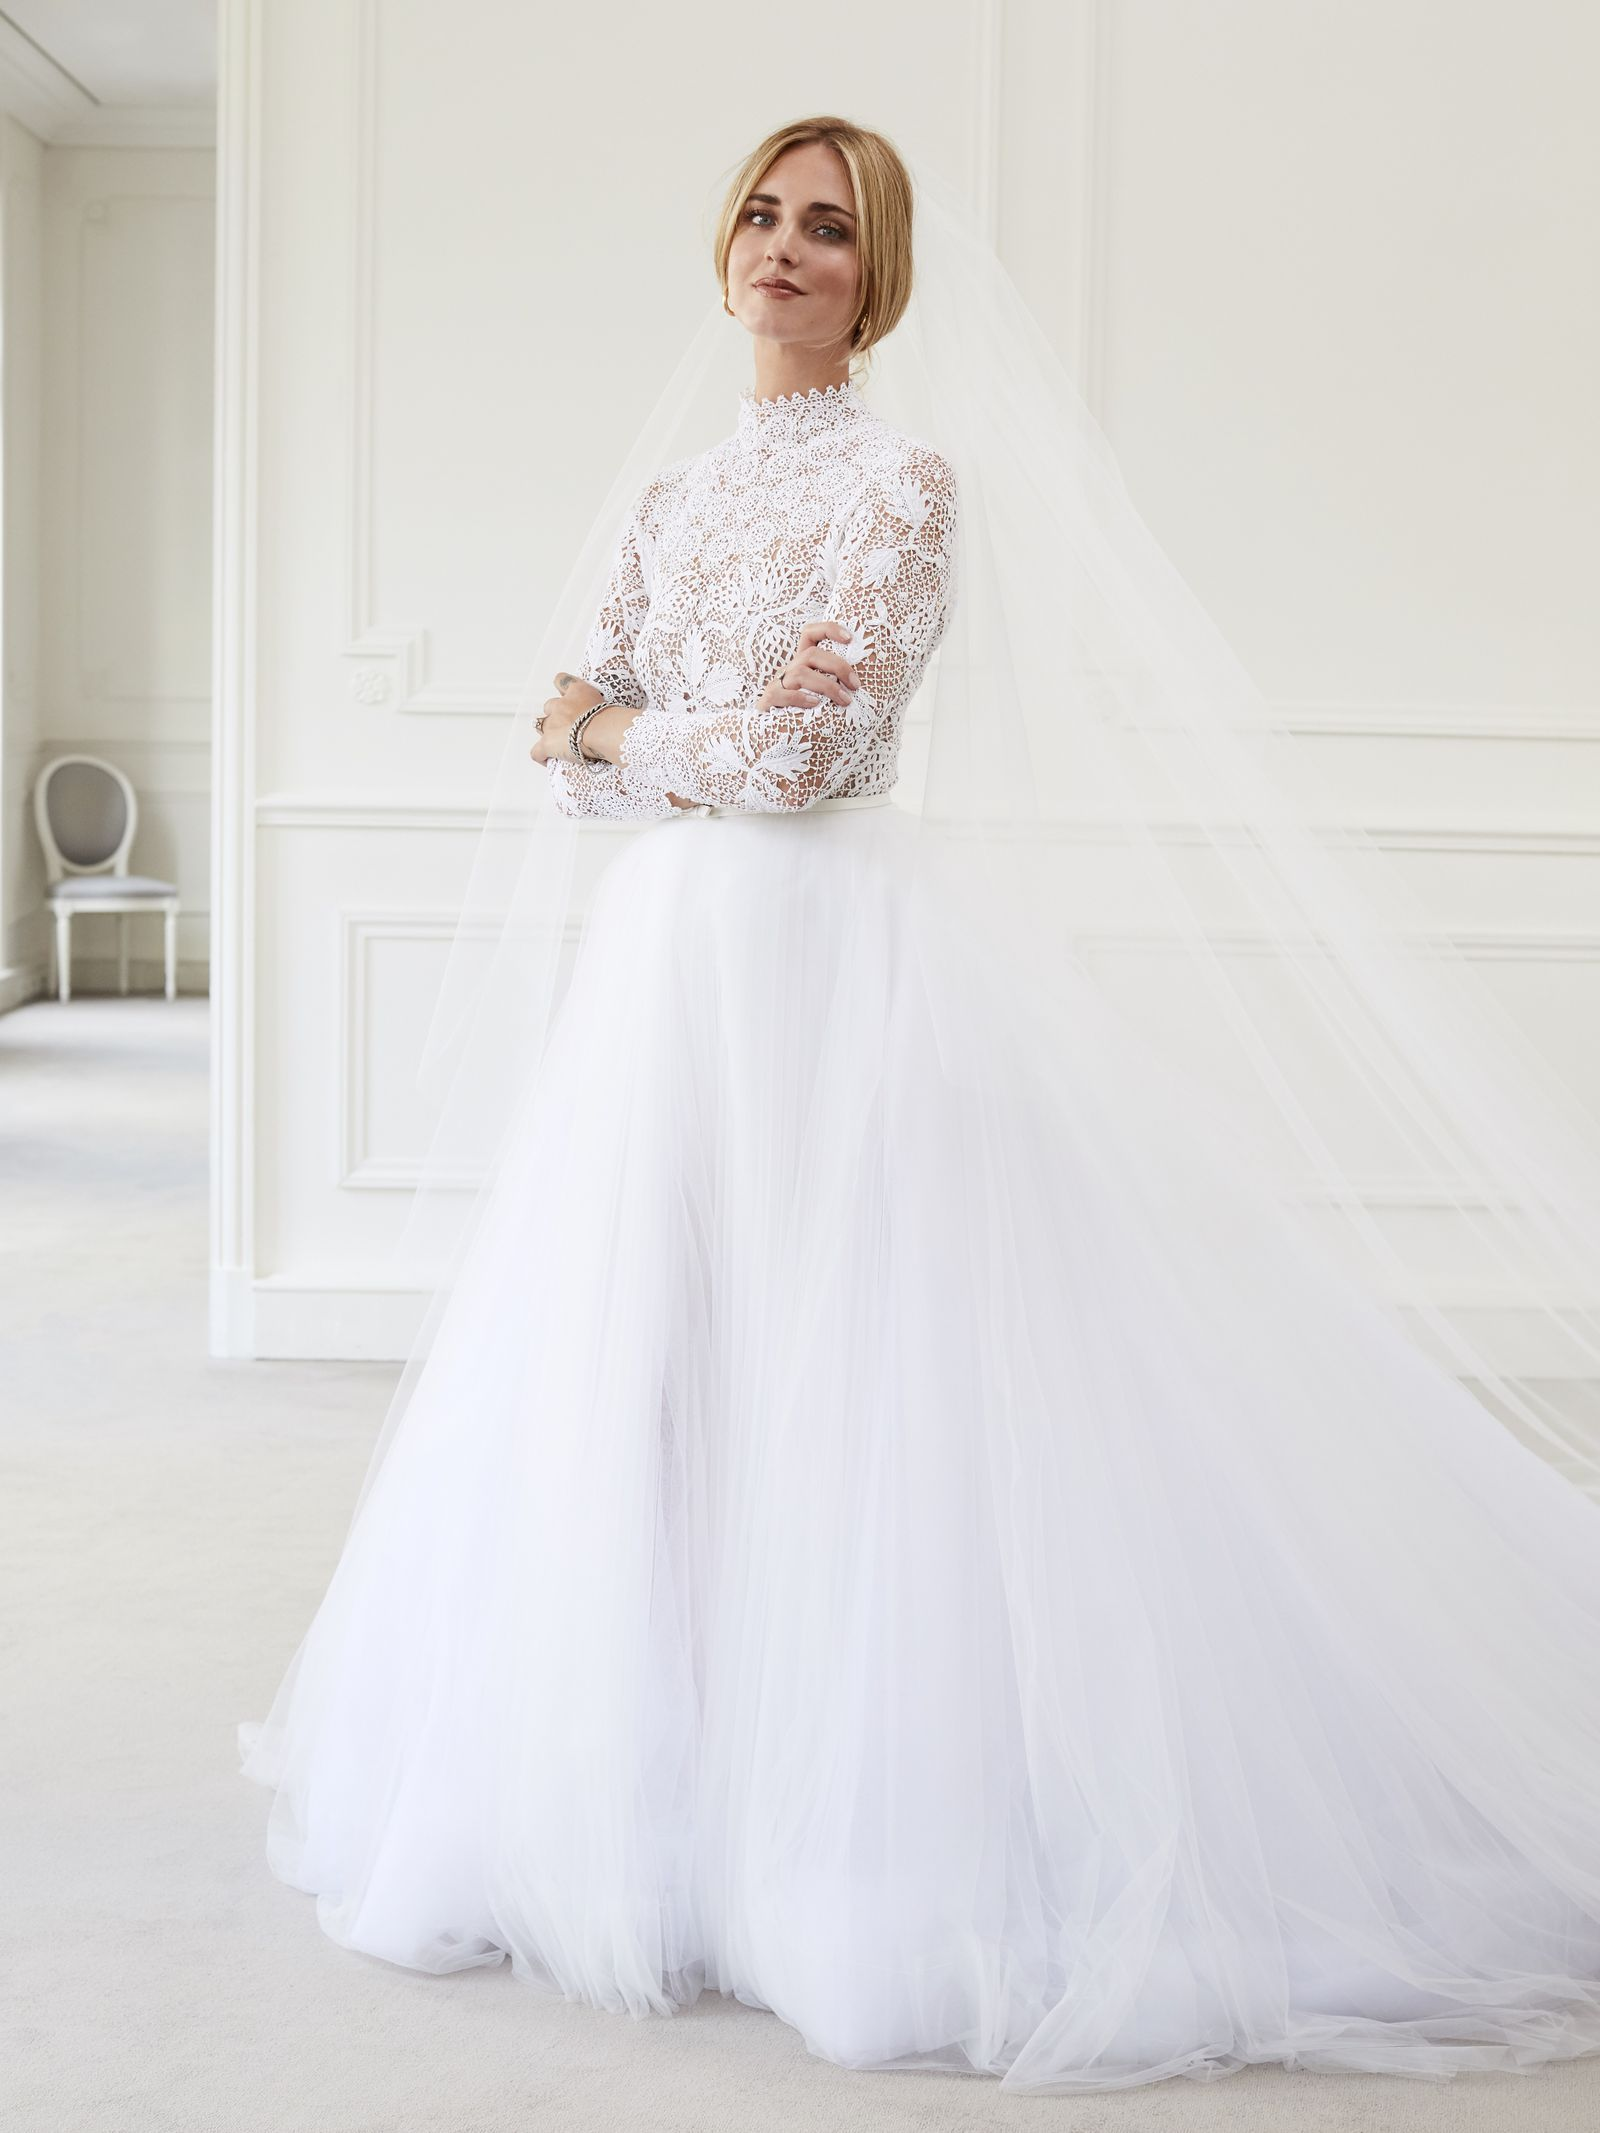 Dior wedding dresses  Video See the moment Chiara Ferragni saw her Dior wedding gown for